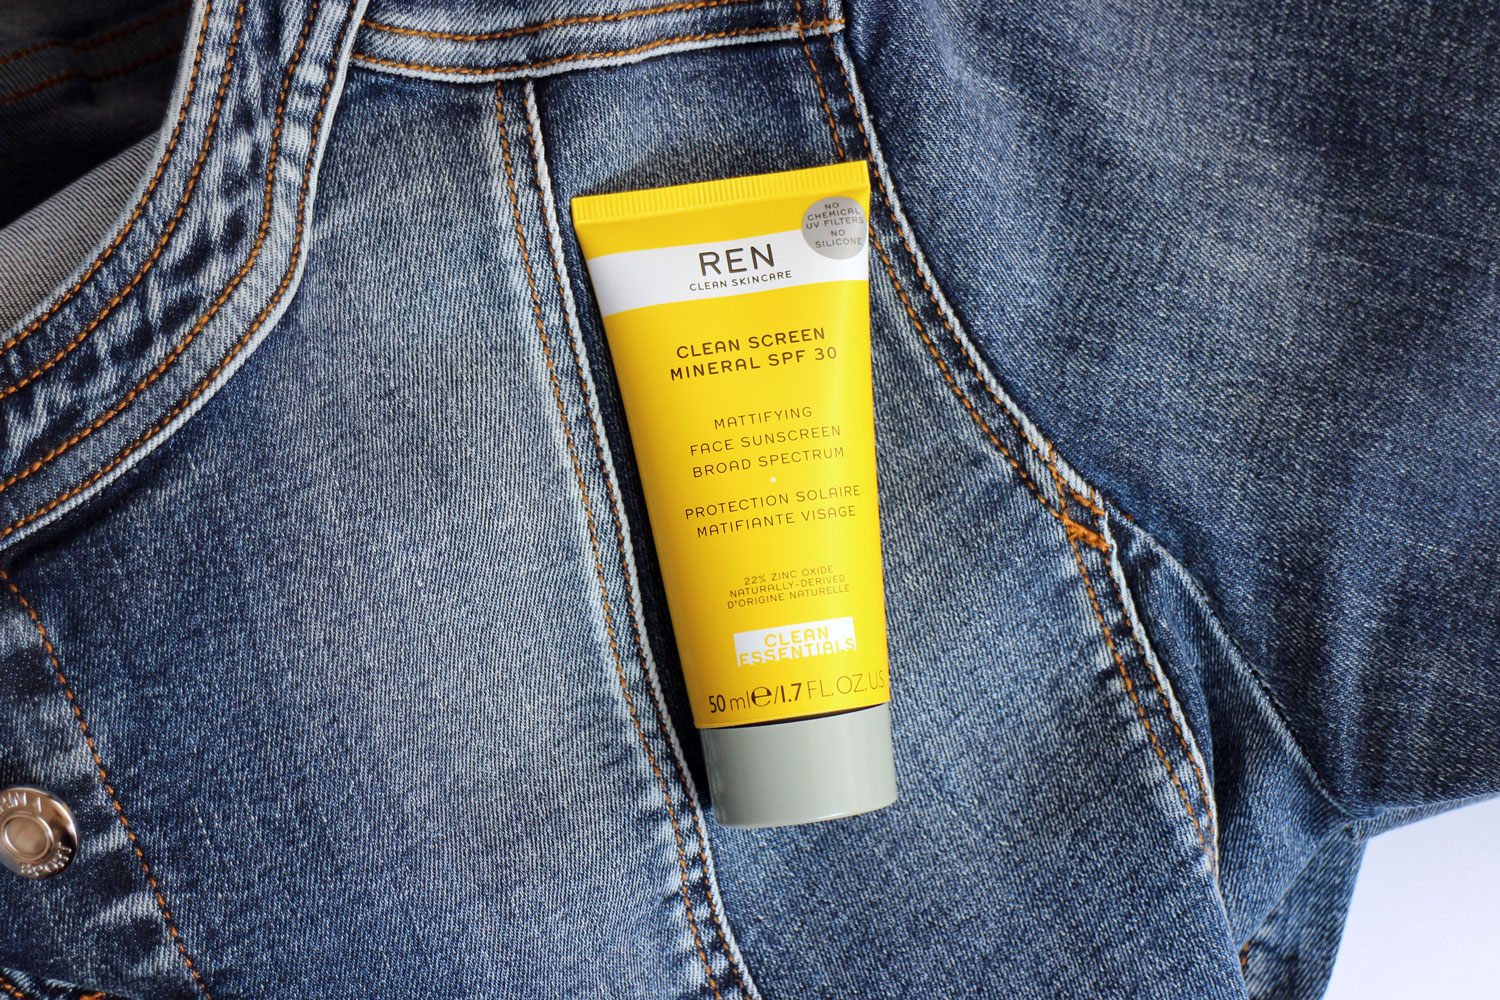 Ren Skincare Clean Screen Mineral SPF 30